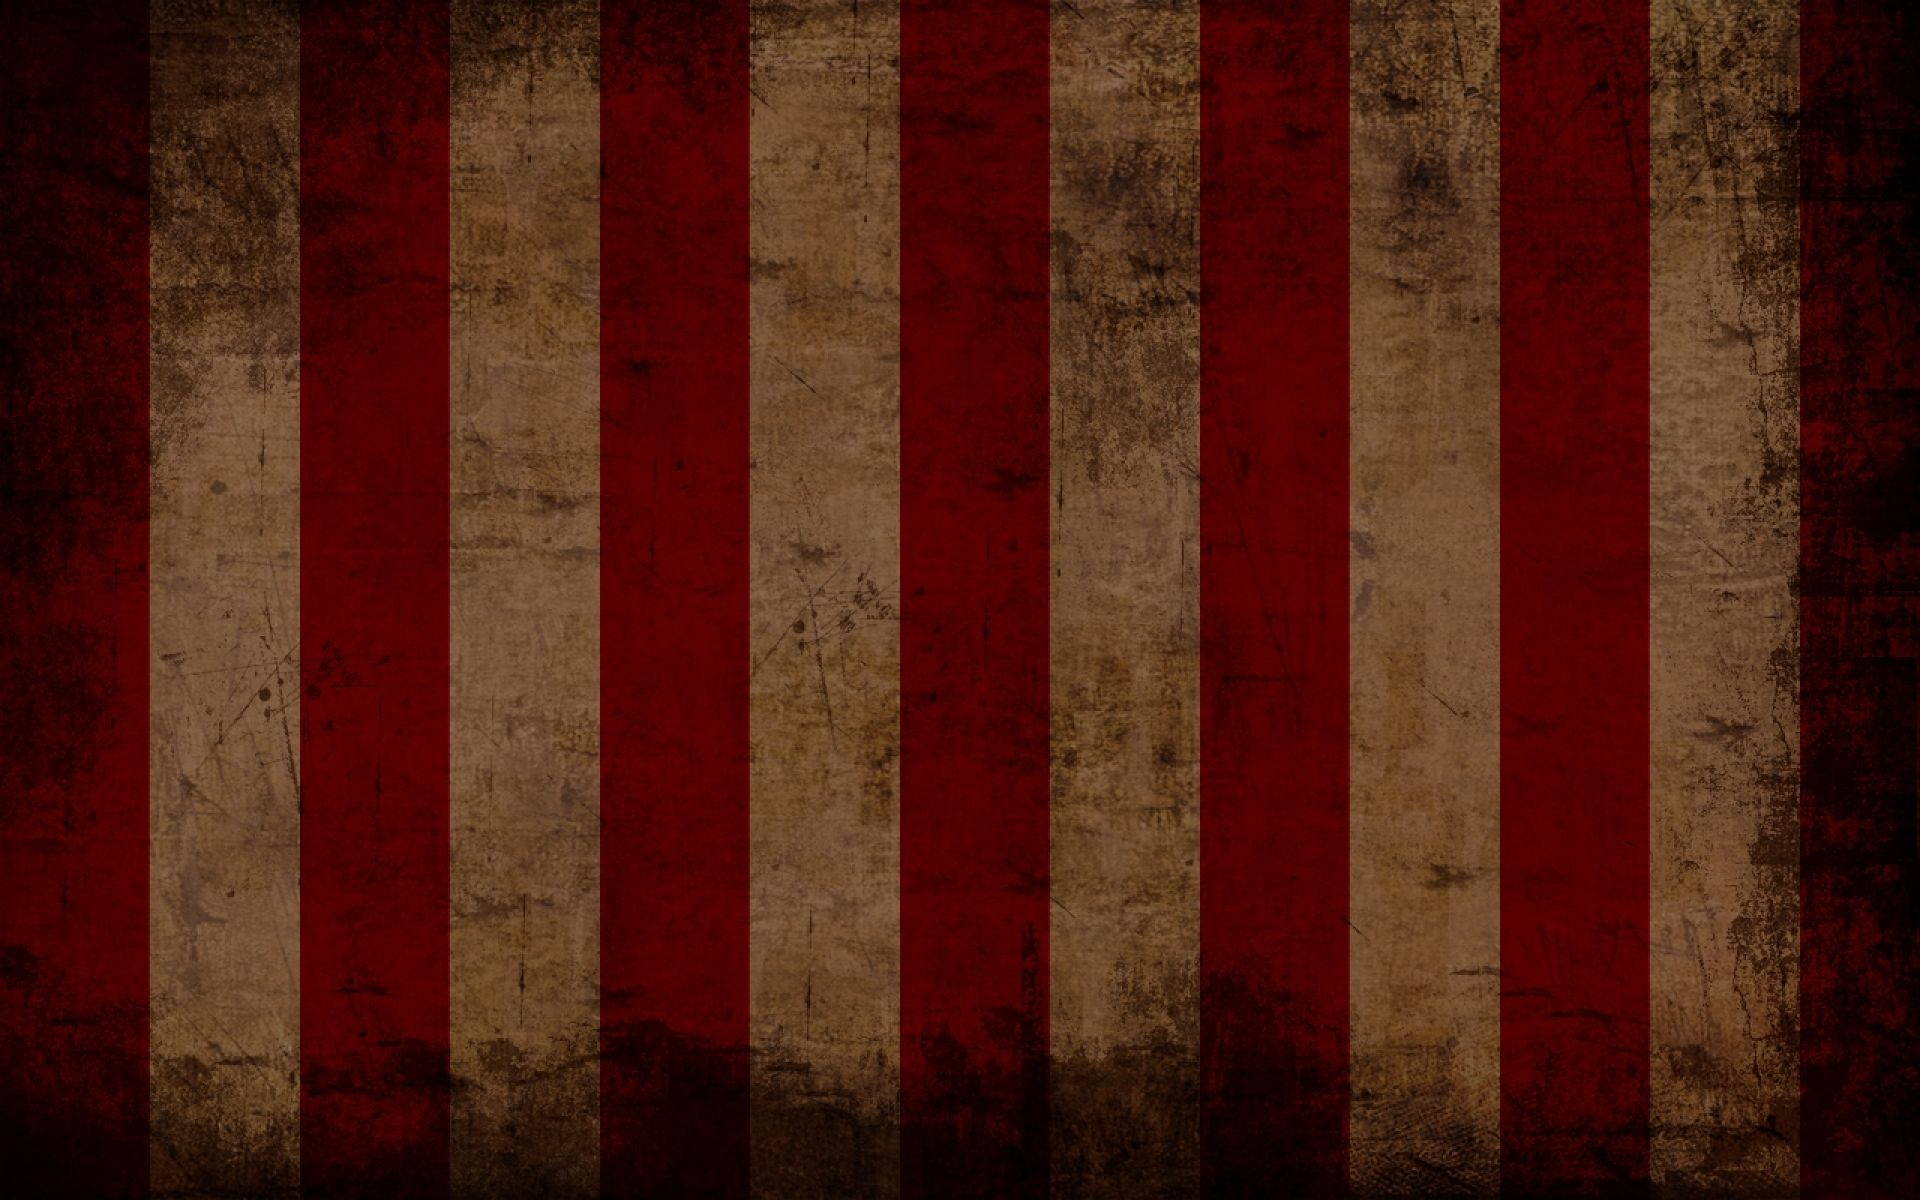 Grunge Backgrounds Stripes 1280x800 Wallpaper High Resolution